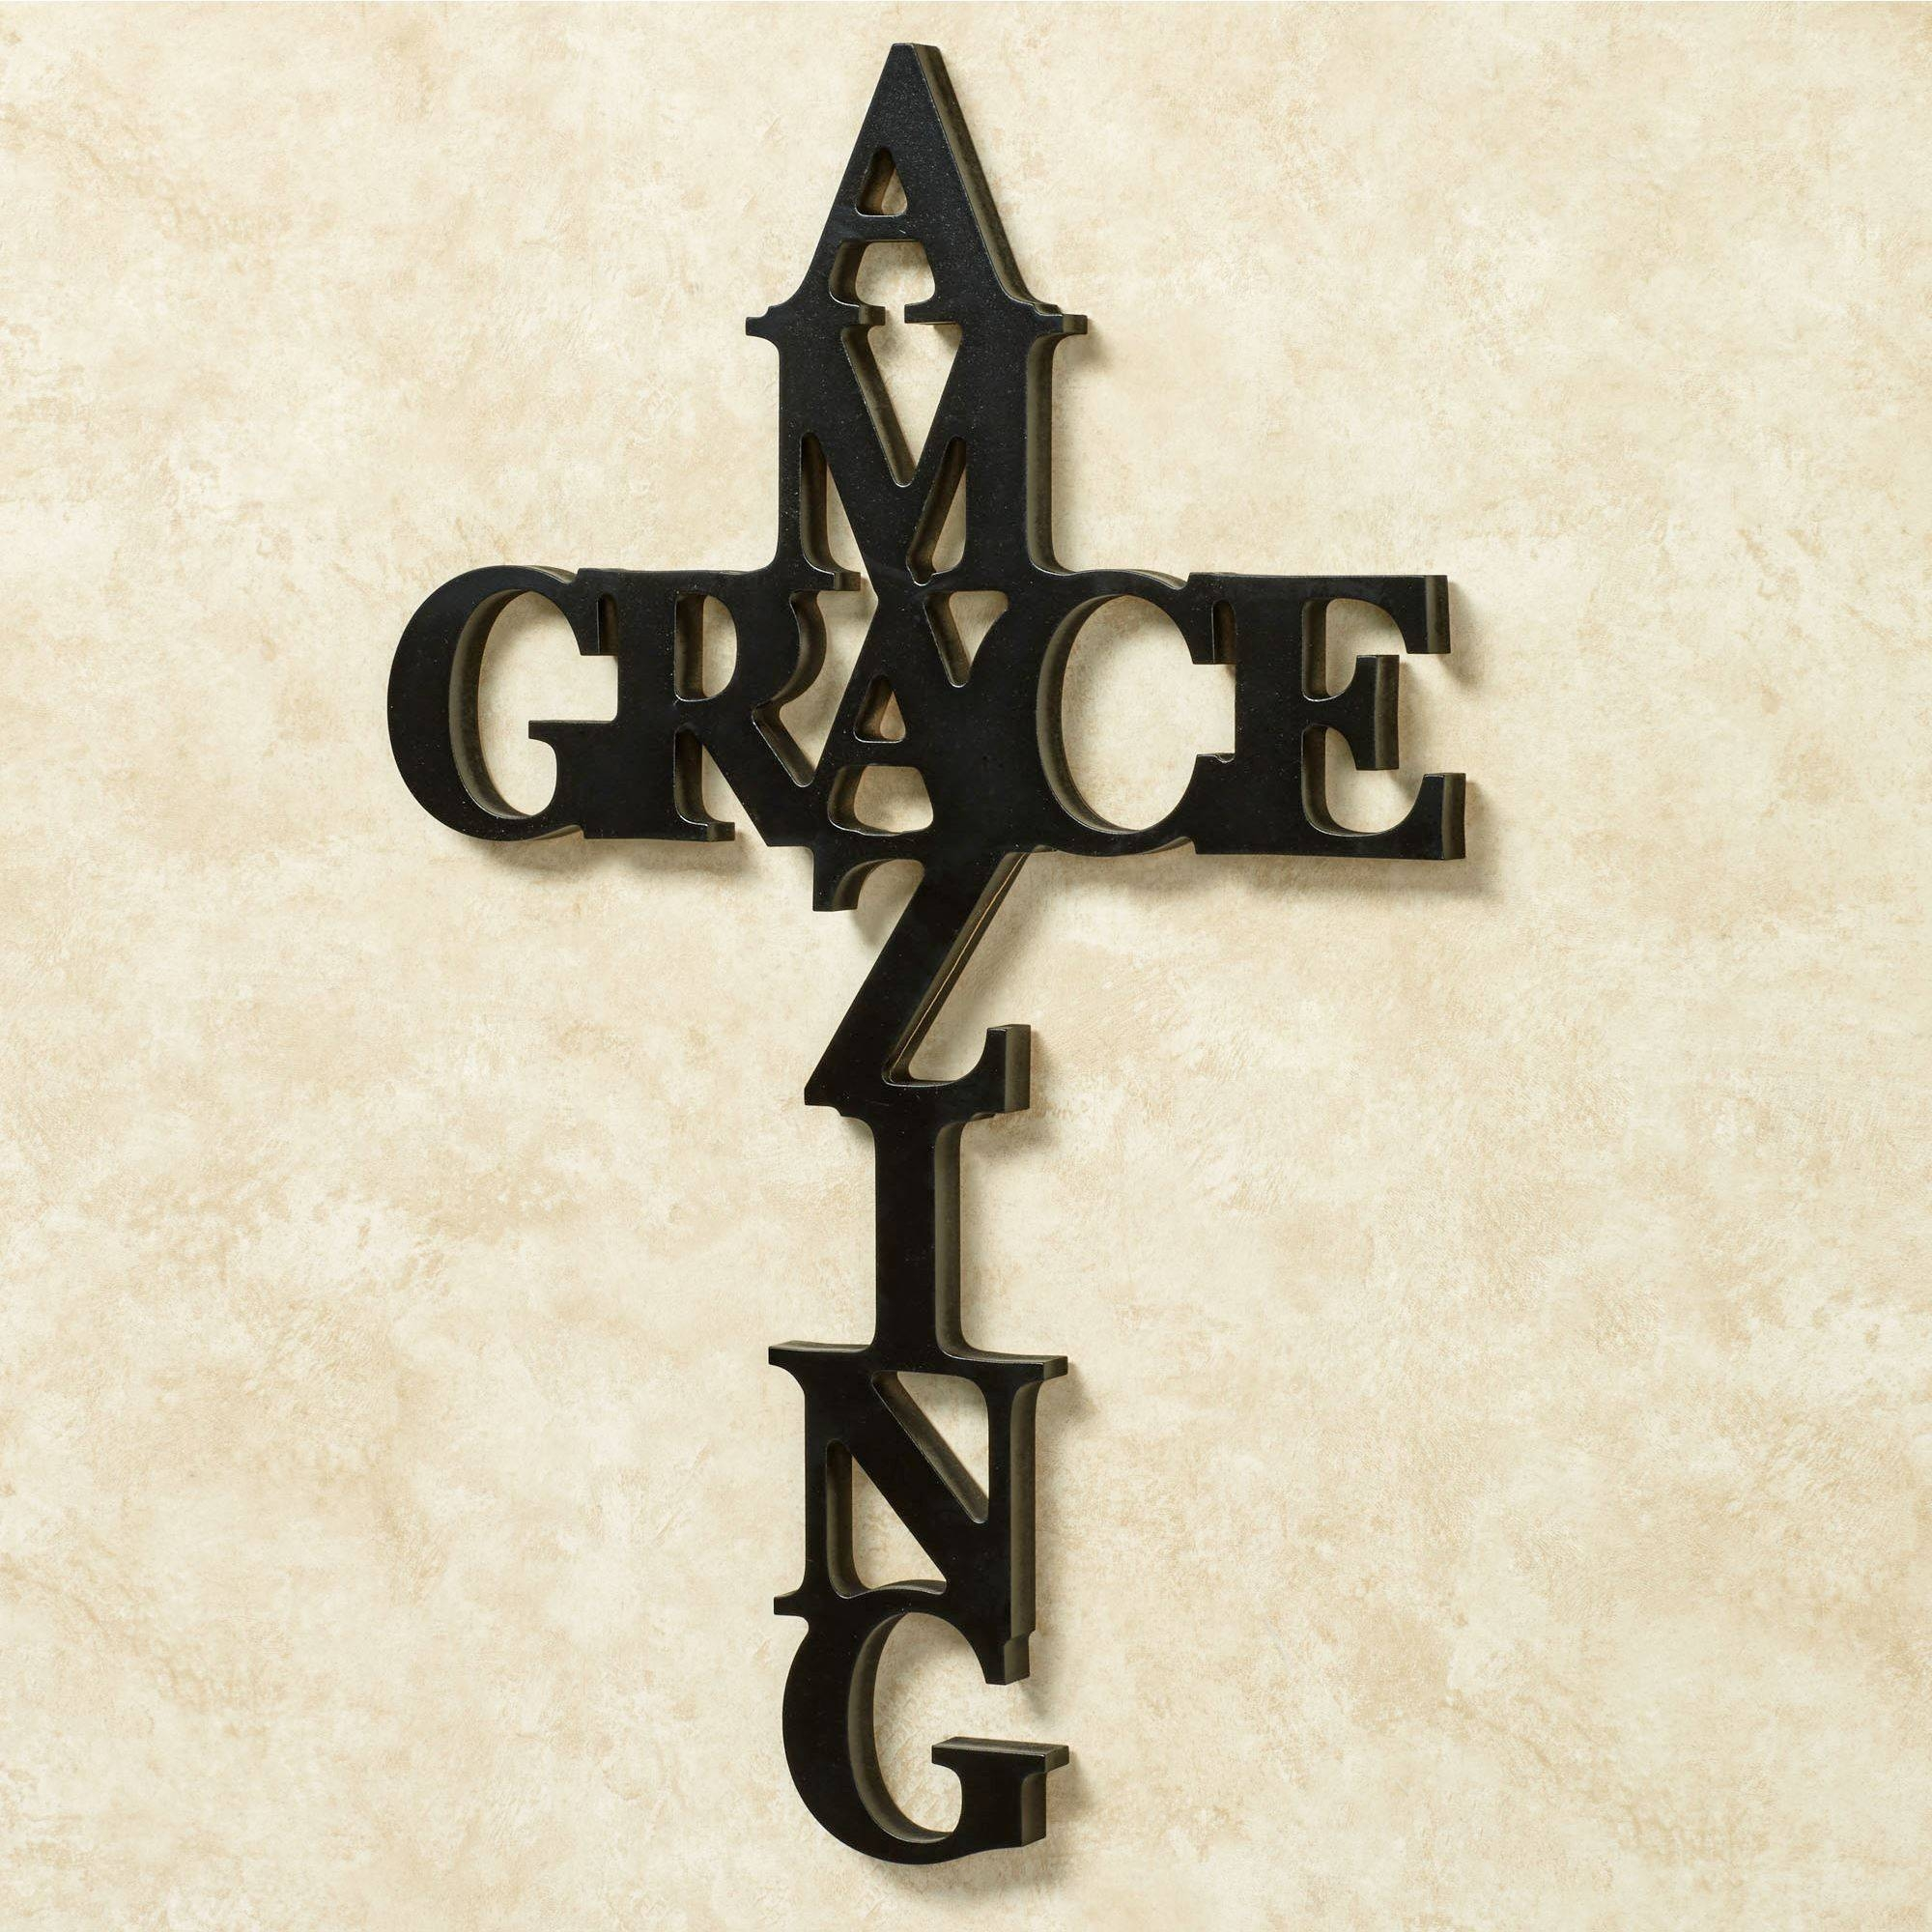 Amazing Grace Word Cross Wall Art Intended For Latest Grace Wall Art (View 12 of 25)